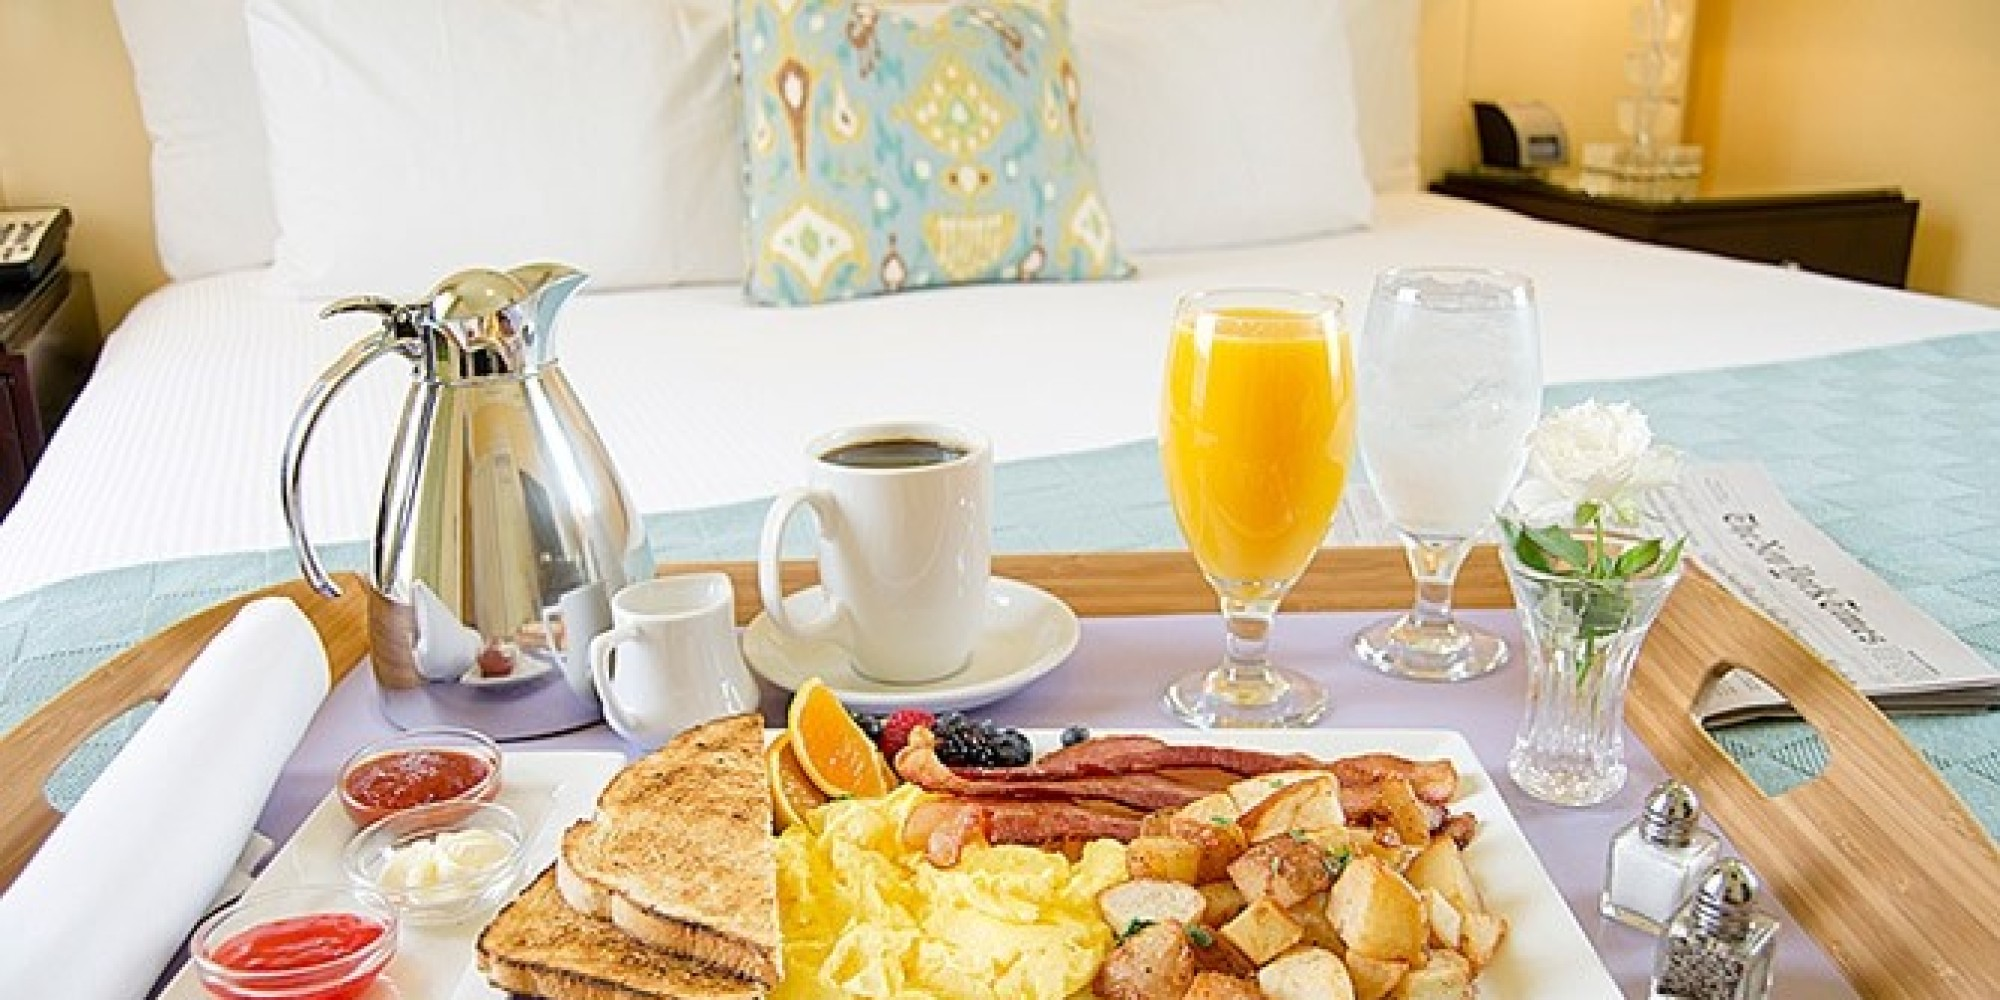 America 39 s most popular room service items huffpost for Service veterinaire cuisine